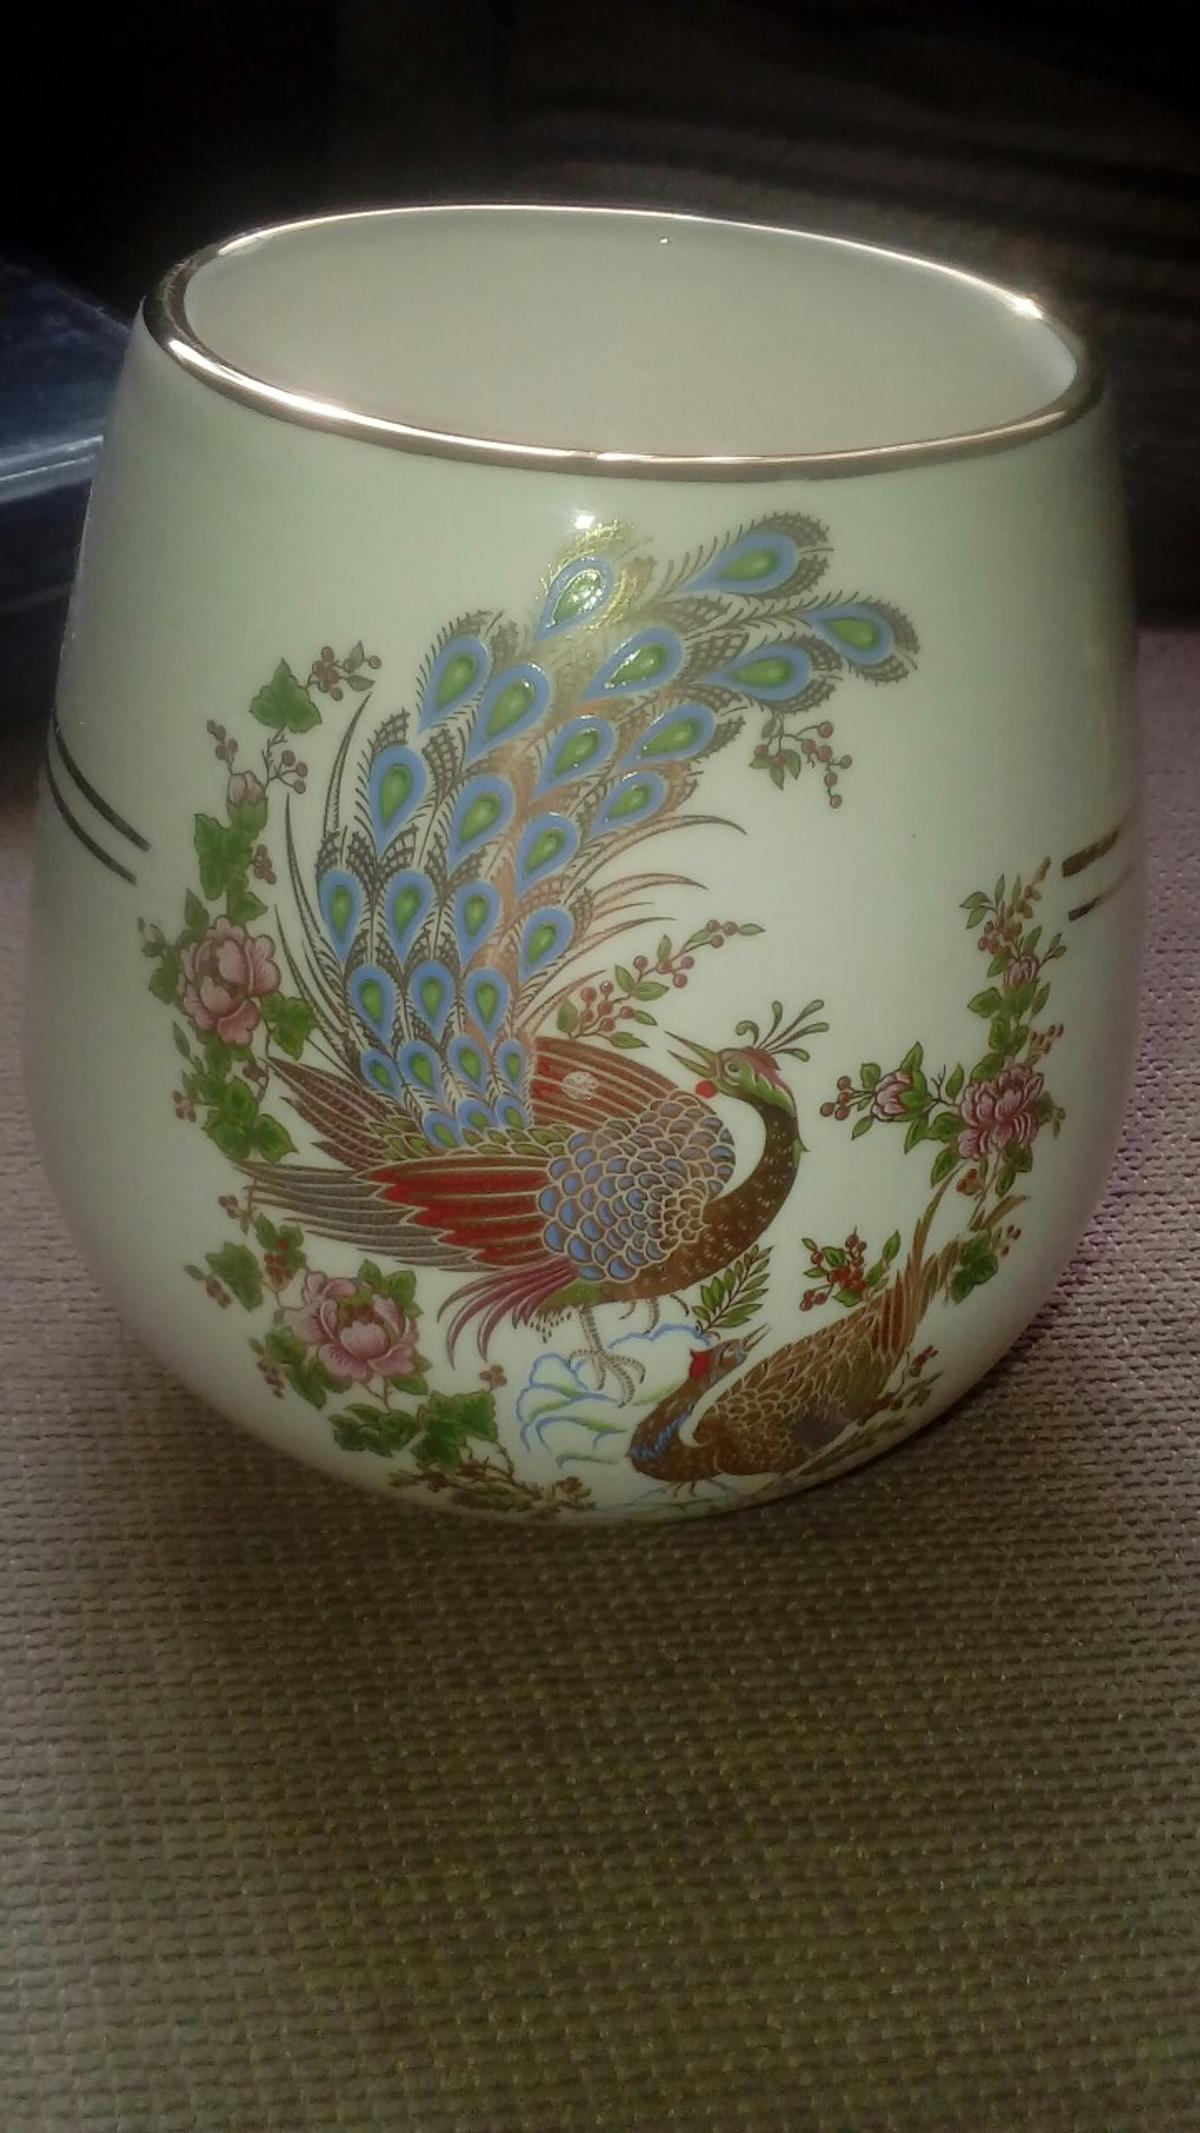 excellent condition lovely peacock design